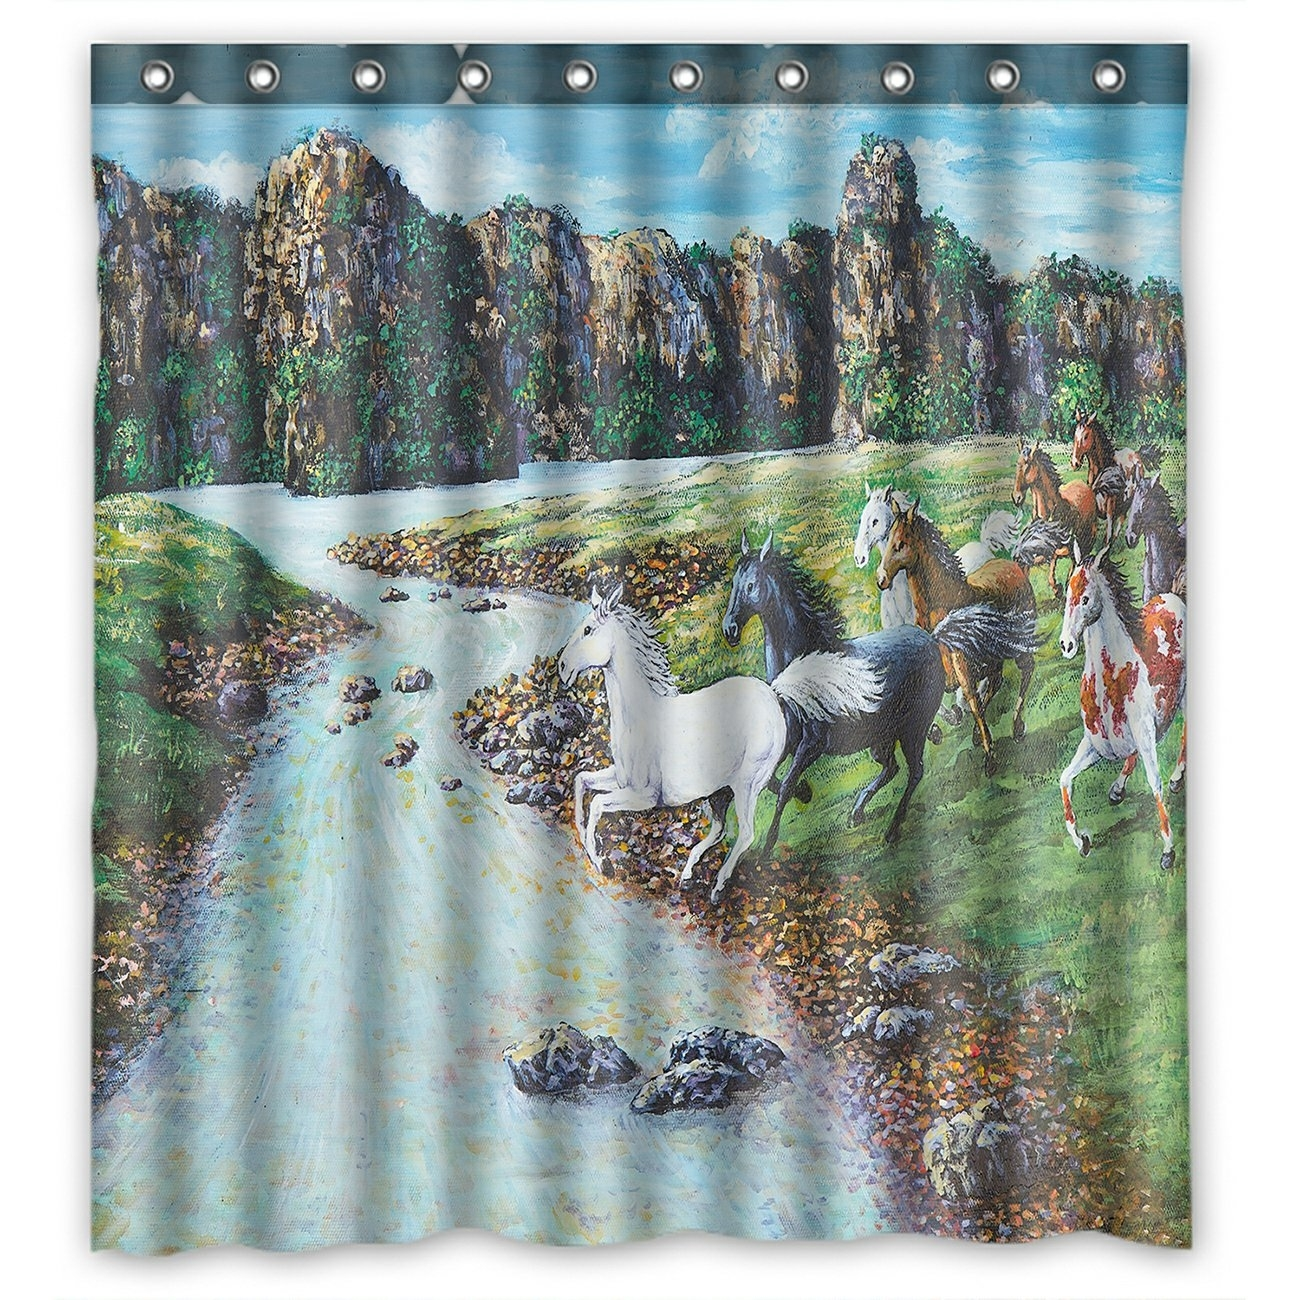 Oil Painting Landscape Shower Curtain, Animal Horses Crossing the River Shower Curtain 66x72 inch